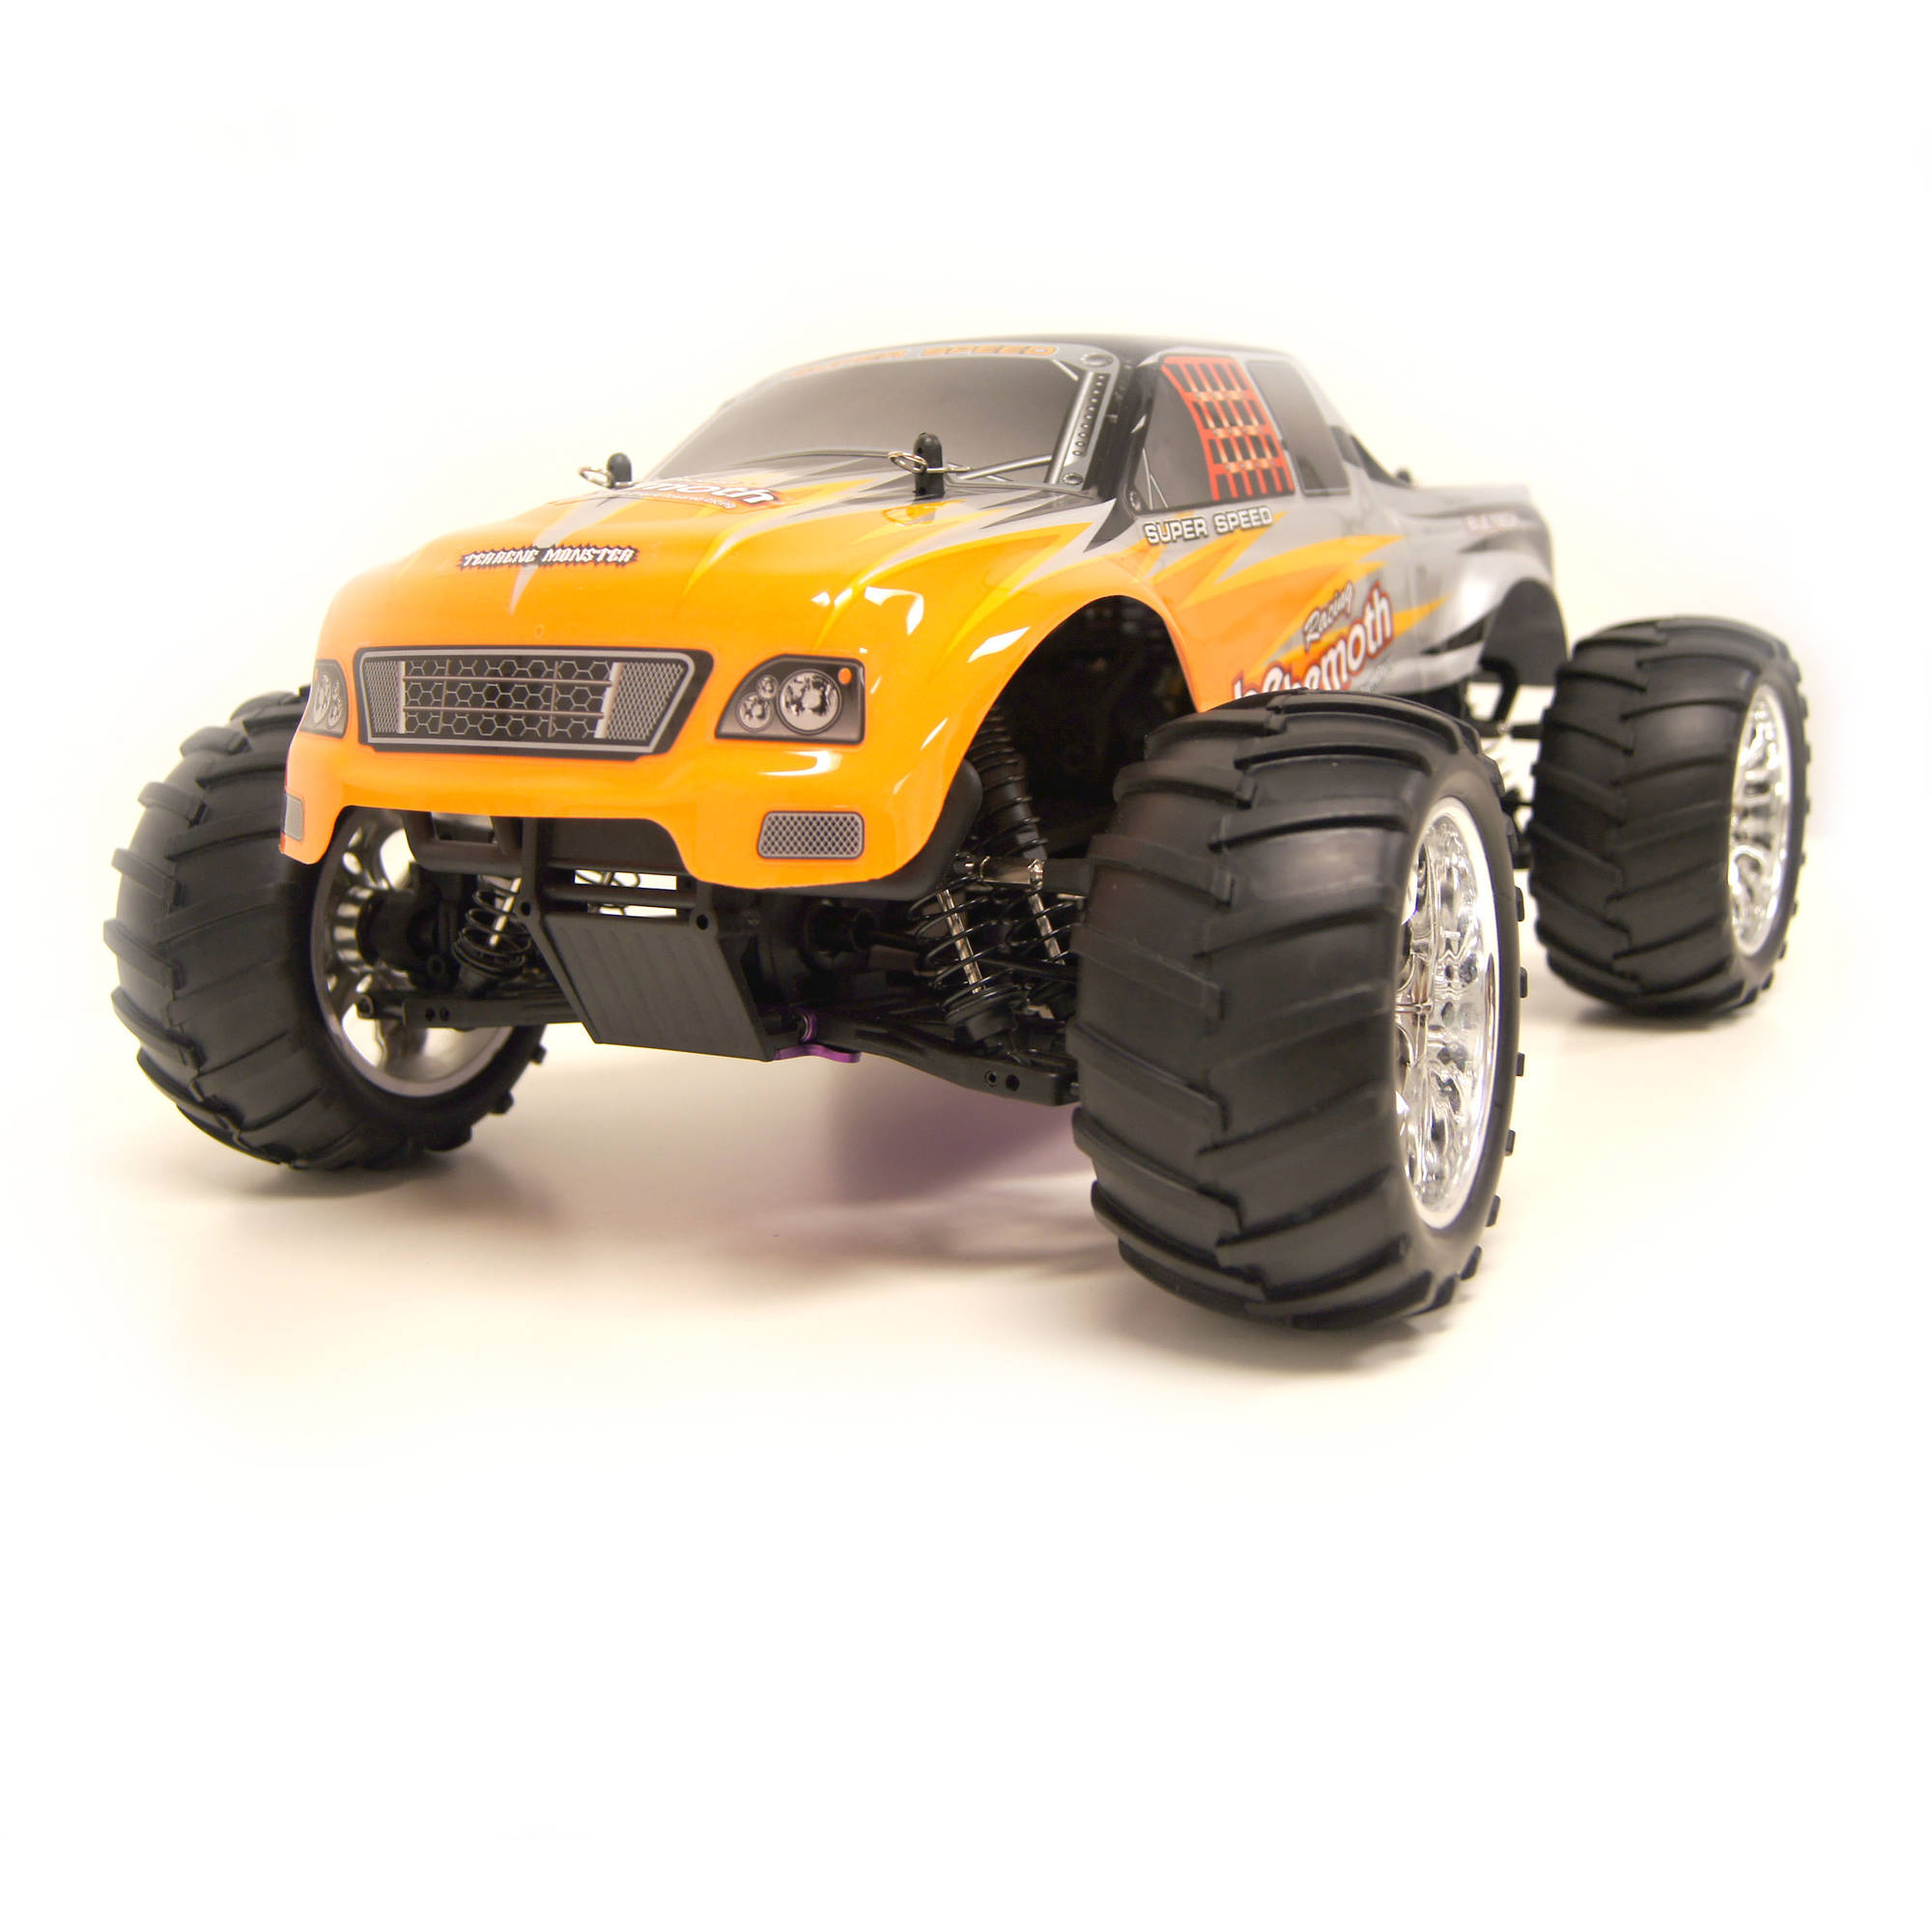 1/10 Scale RCC1081ORANGE R/C Gas Powered 4WD Off-Road Truck